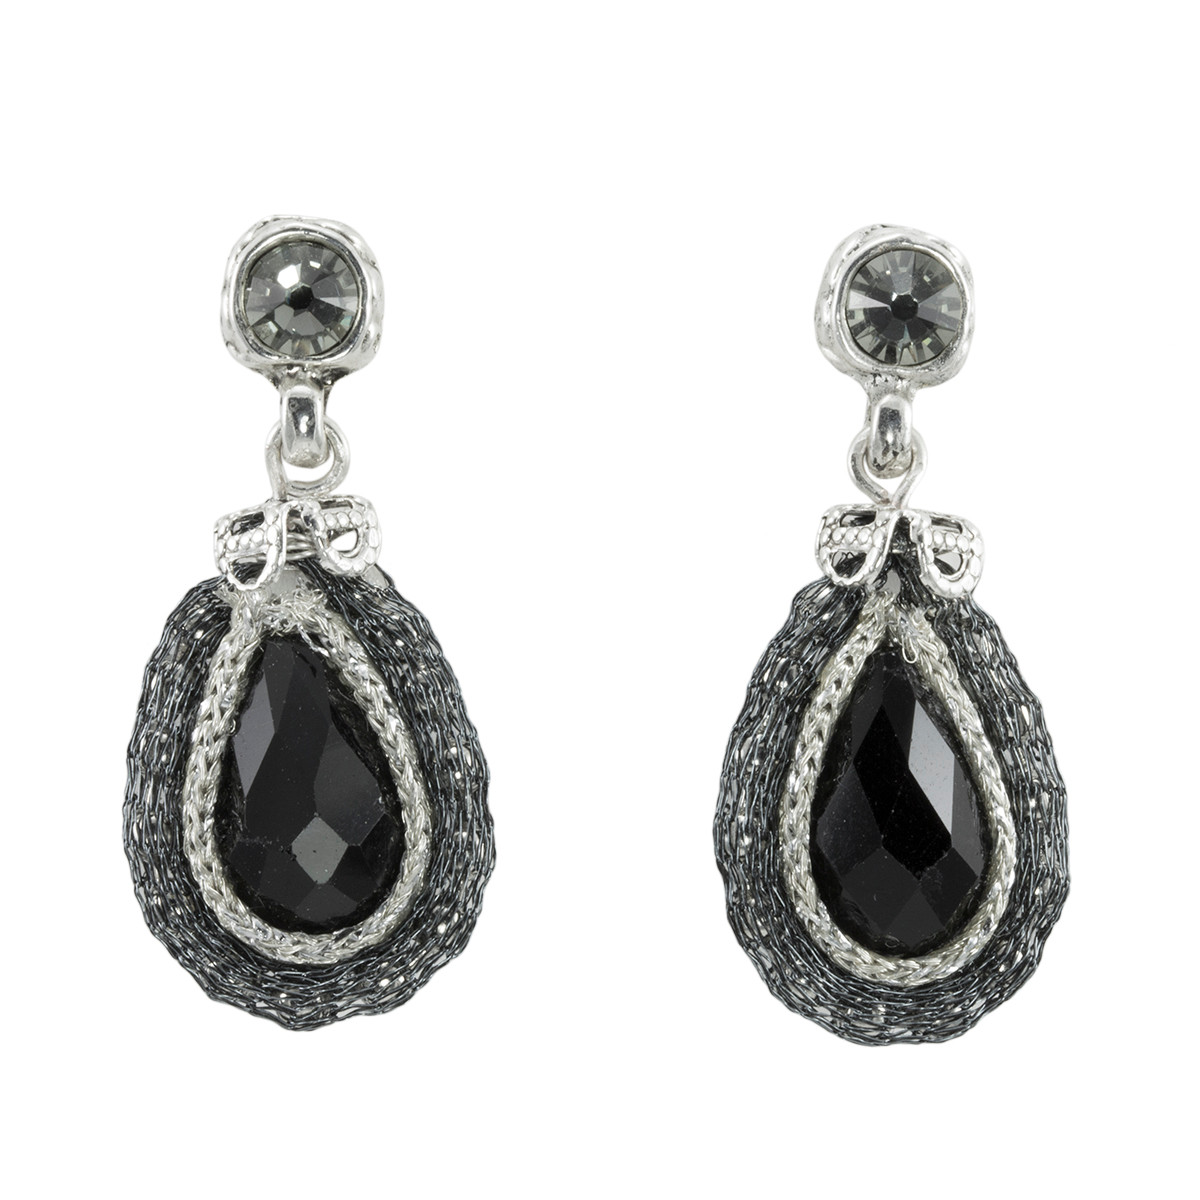 Anat Jewelry Black Joy Nouveau Glam Black Earrings